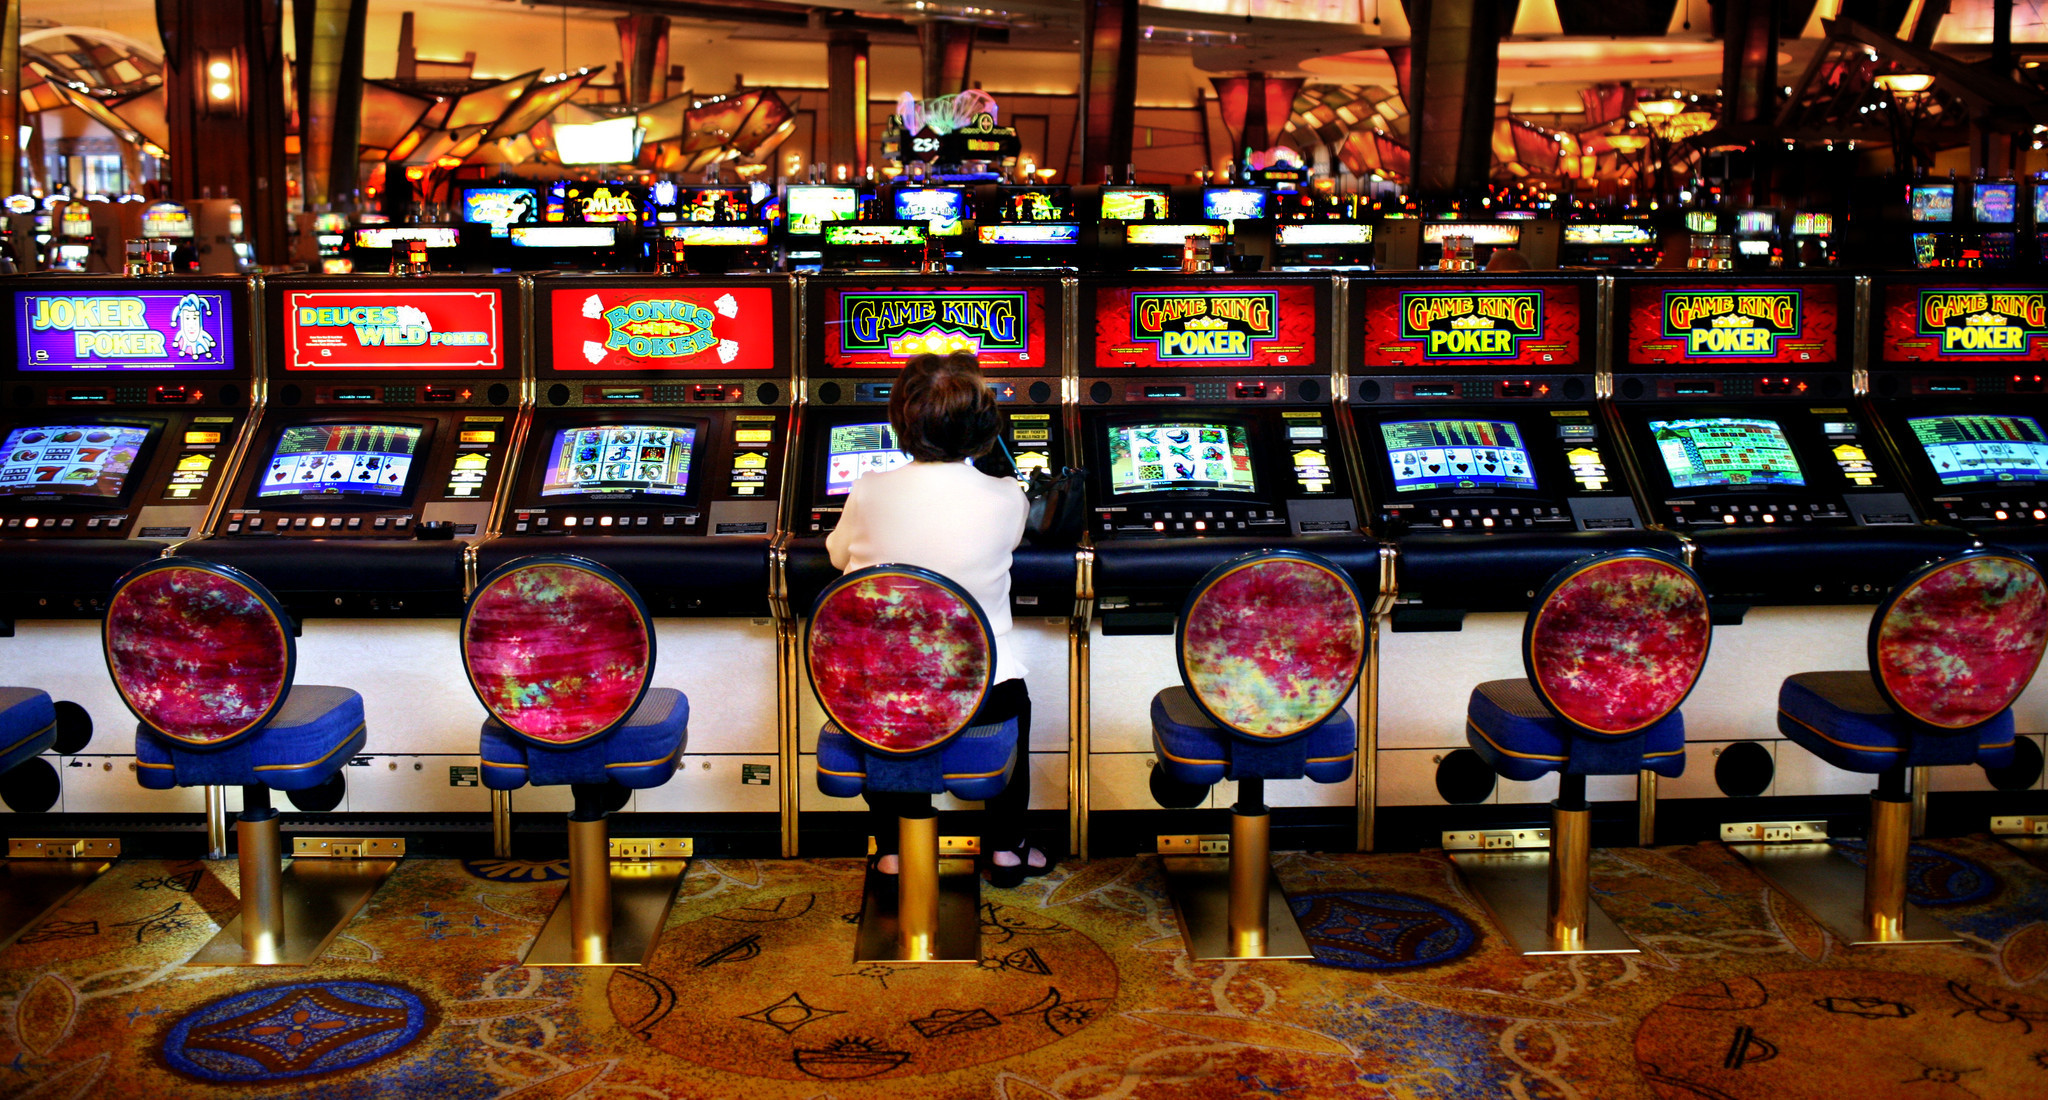 New Slots At Foxwoods